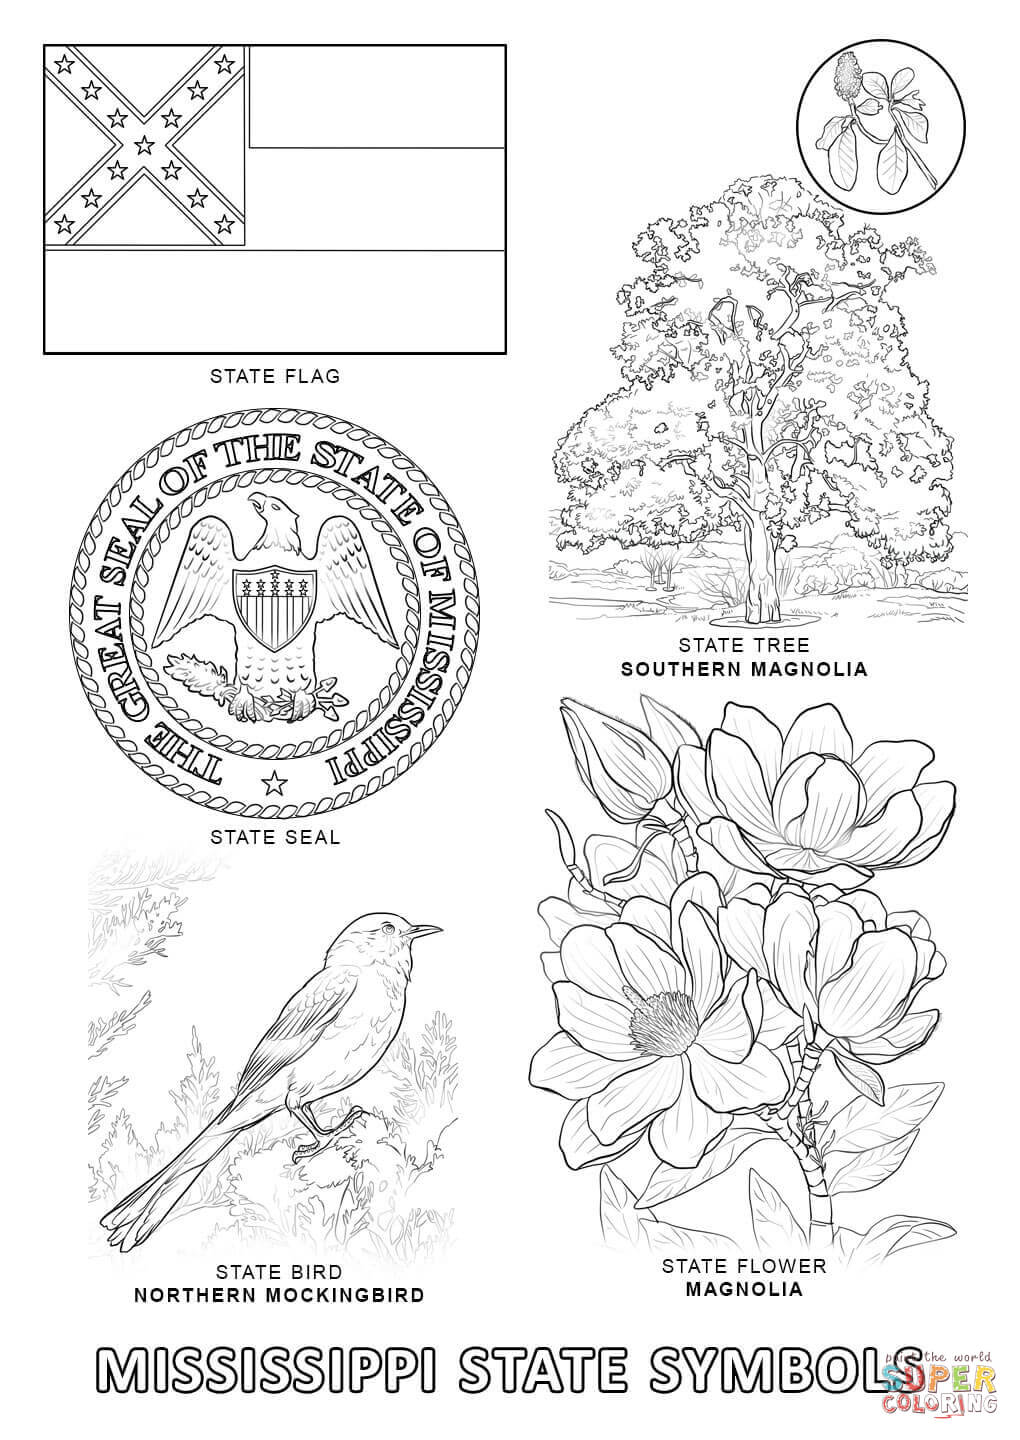 Mississippi State Symbols coloring page | Free Printable Coloring ...